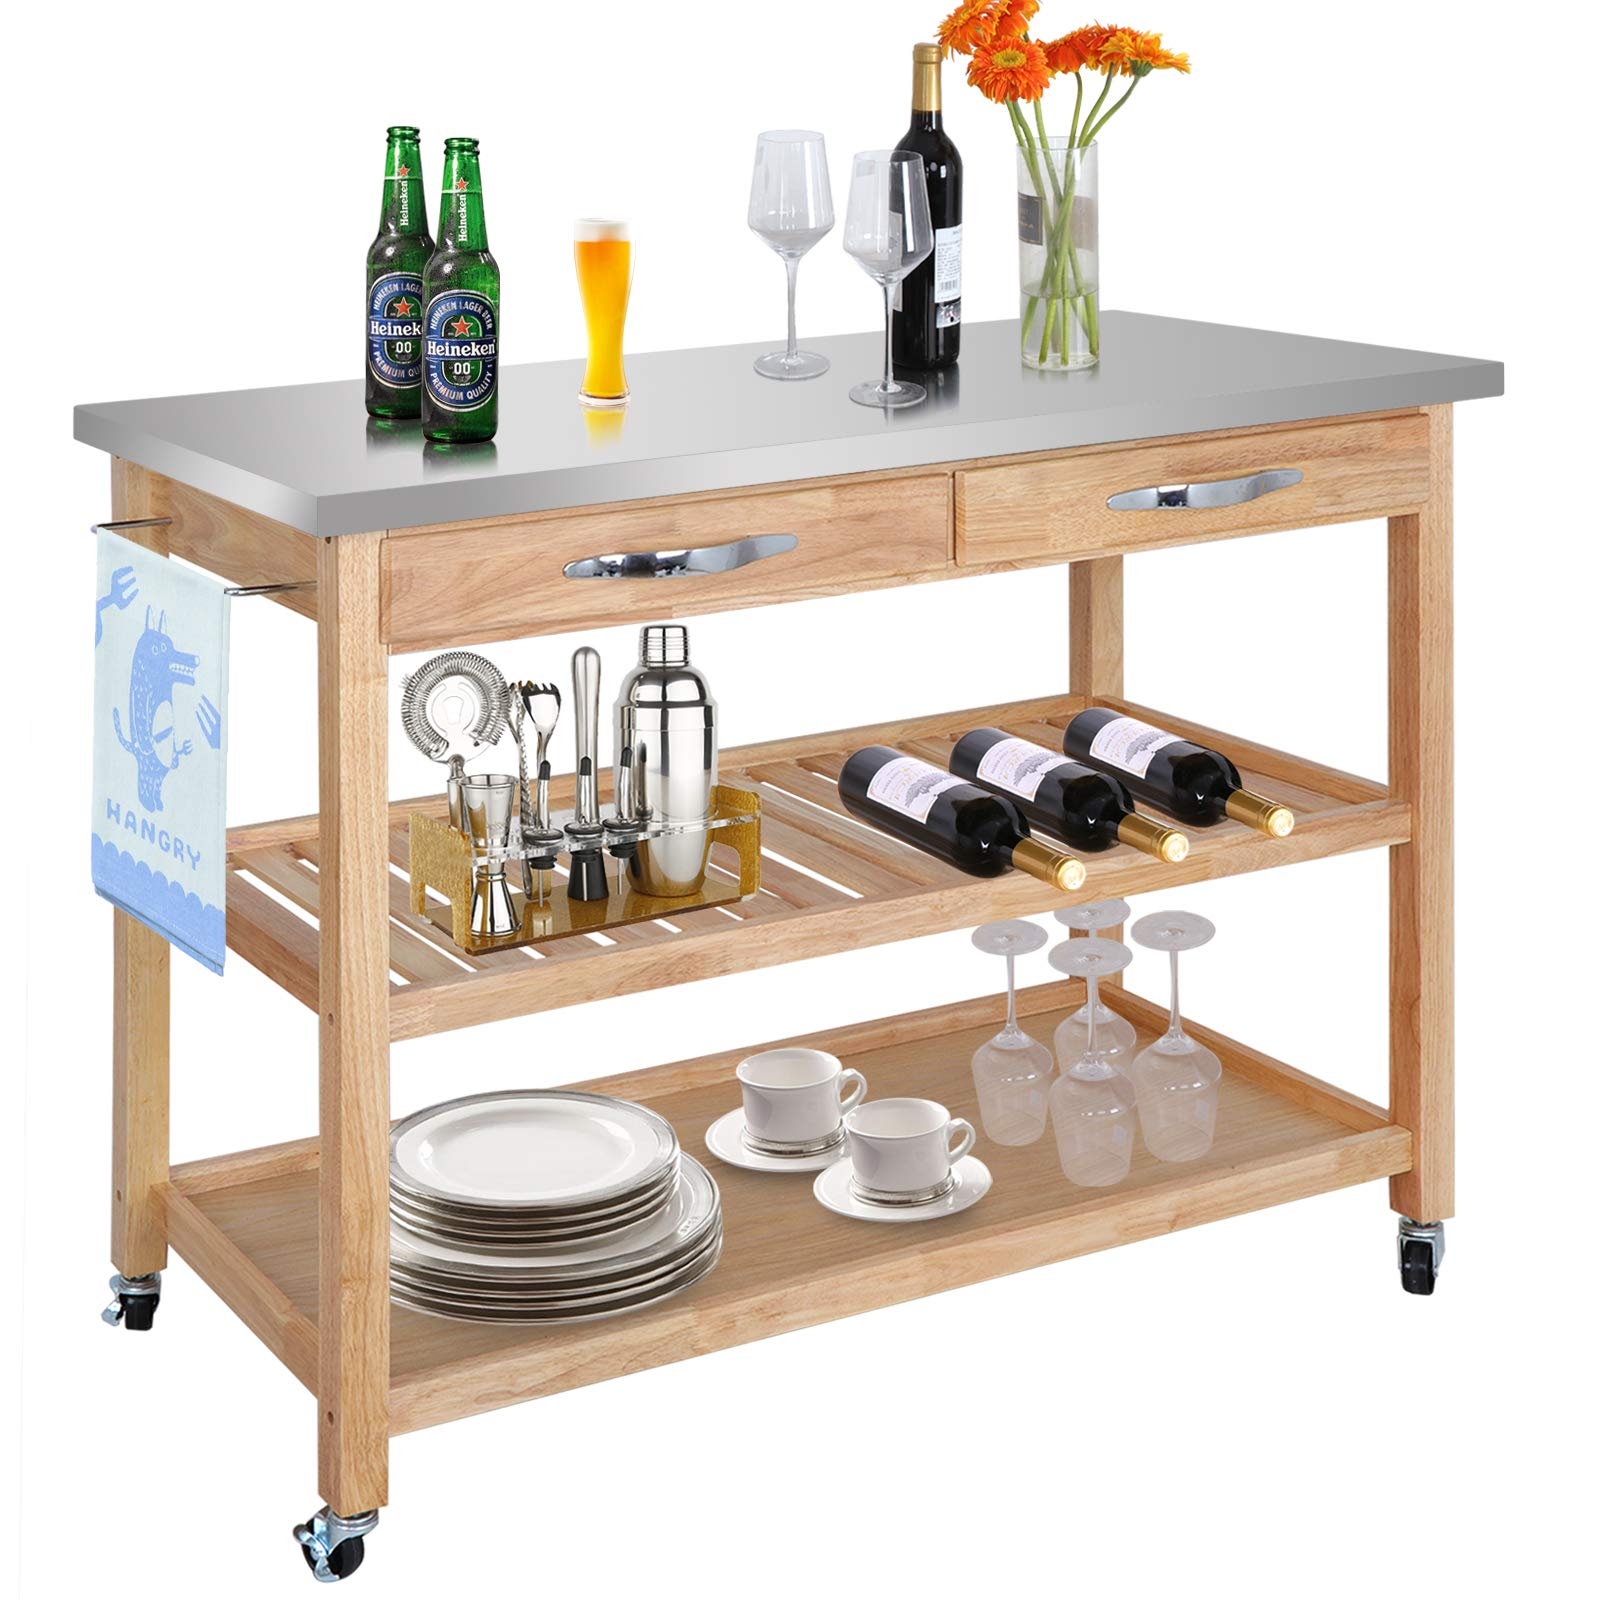 Drawer Major-Q 9098302 Stainless Steel and Gray Finish Wheeled Kitchen Island Cart with Spice Towel and Wine Bottle Rack with Slatted Shelf